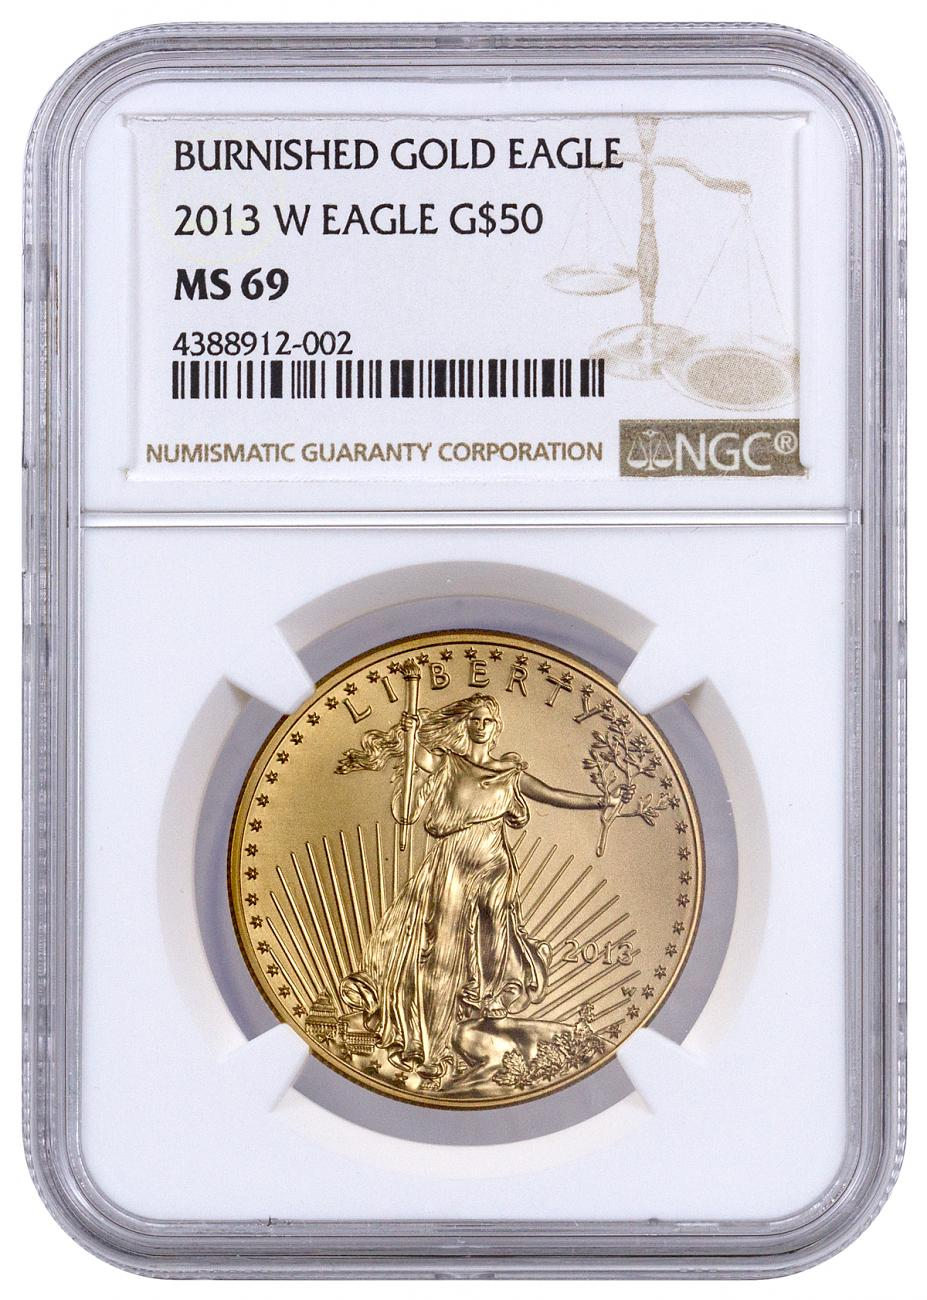 2013-W $50 1 oz. Burnished American Gold Eagle - NGC MS69